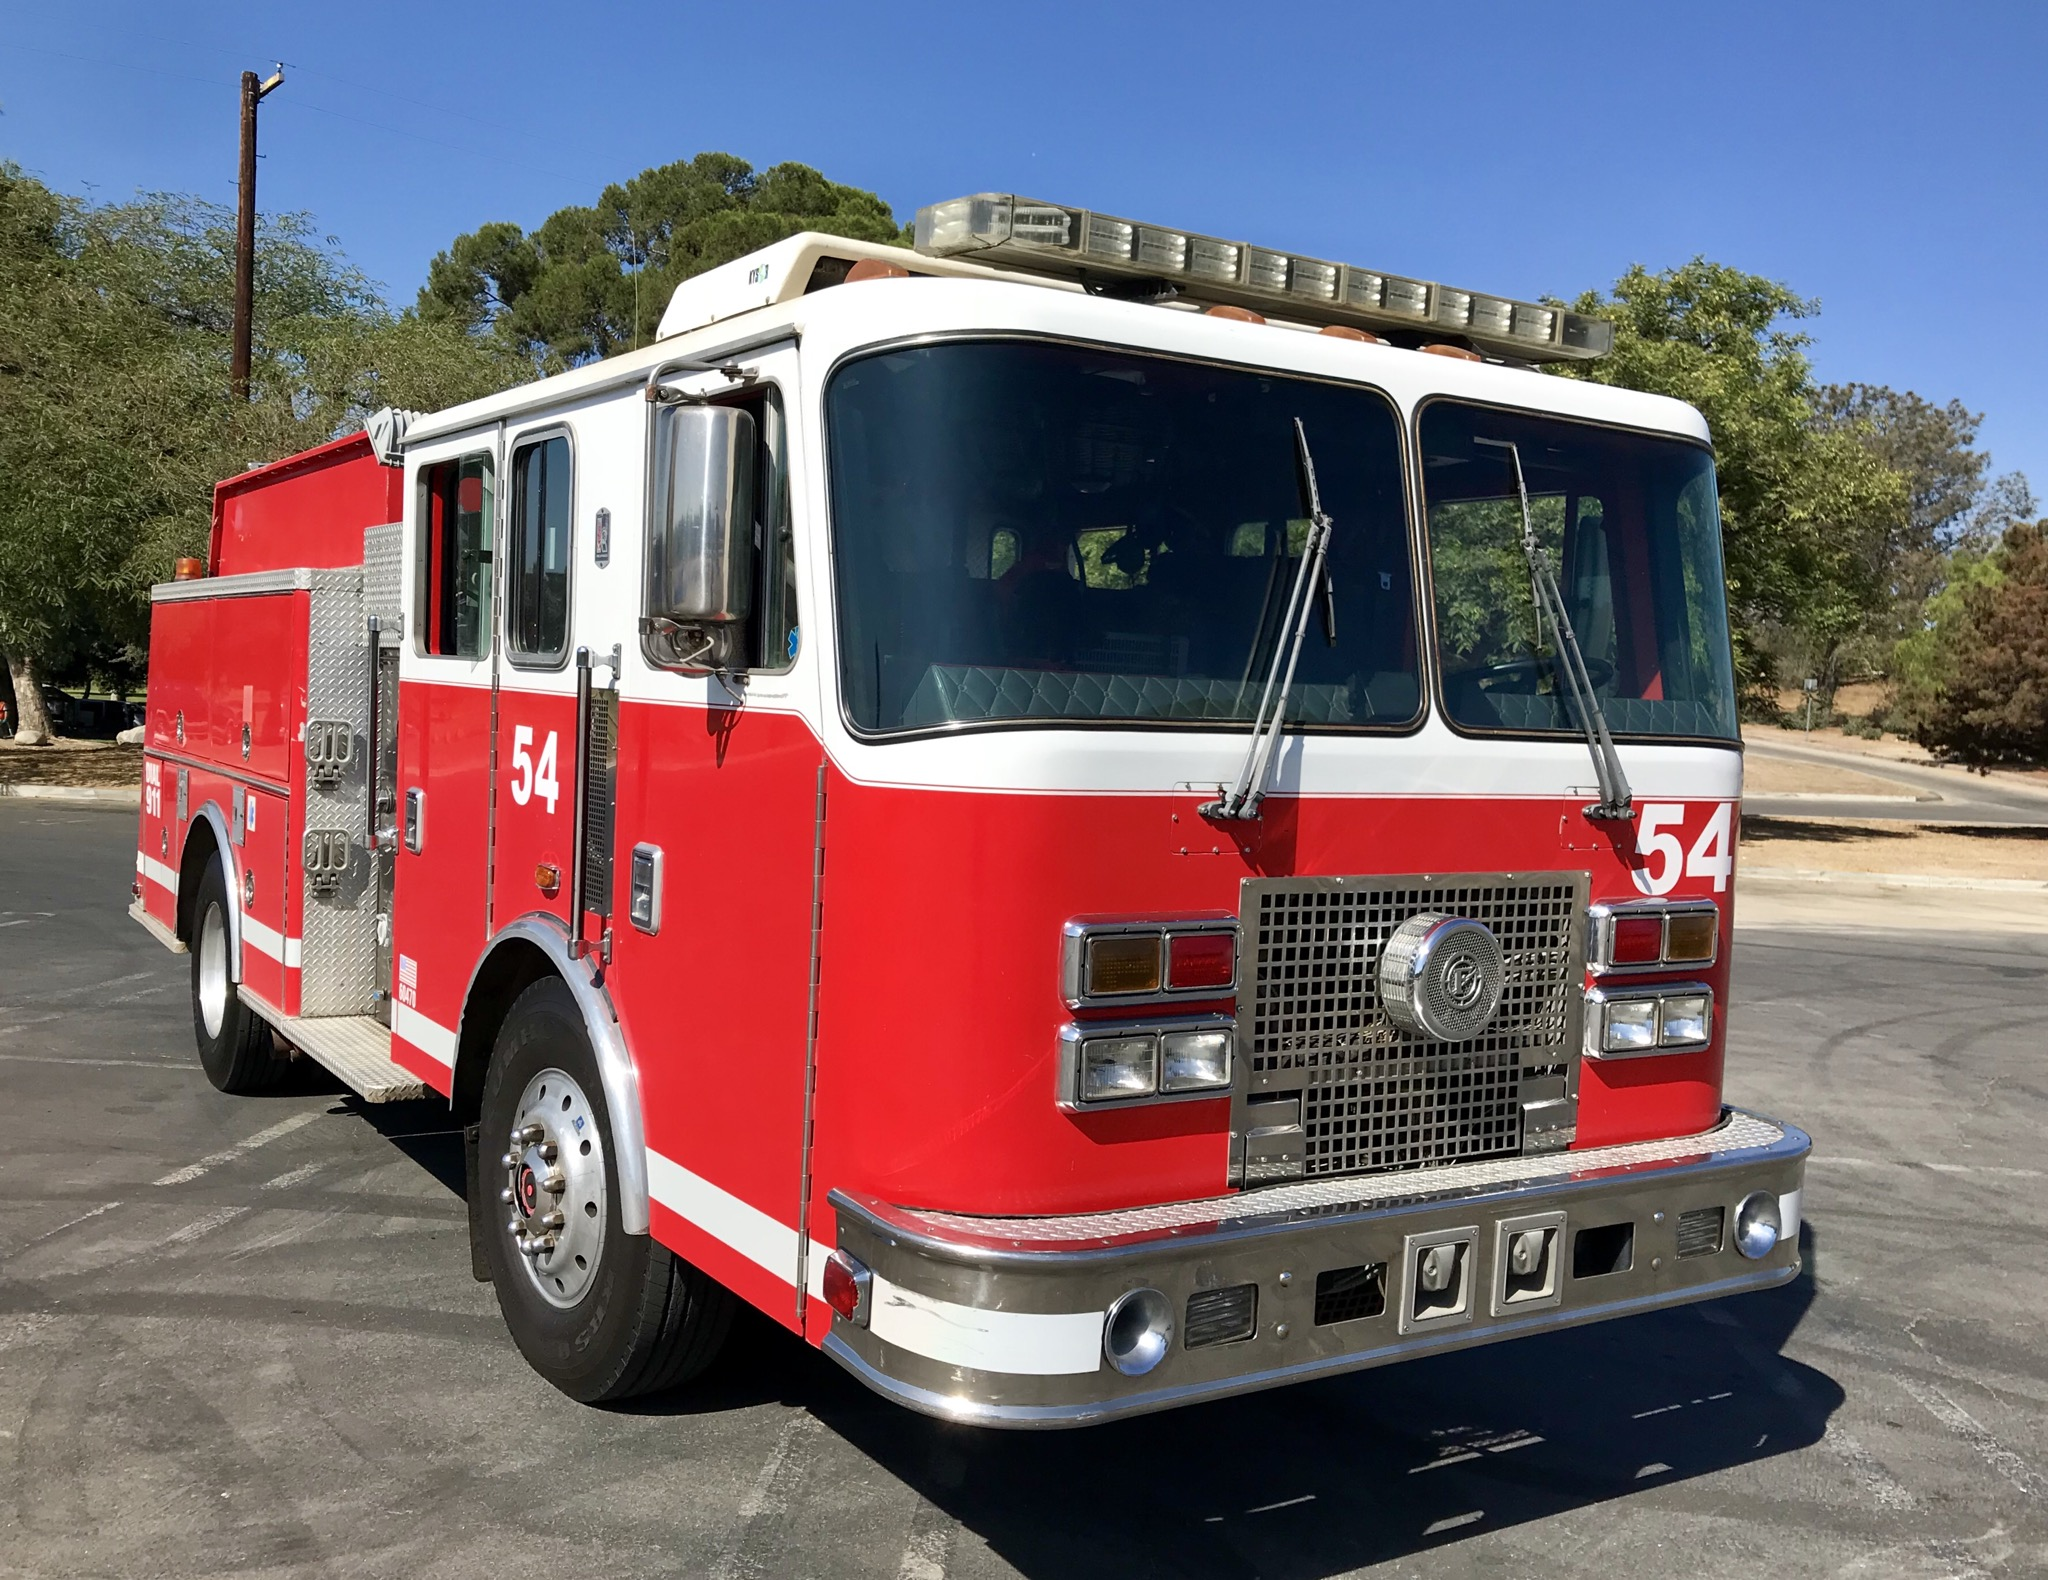 1996 KME Fire Engine Front